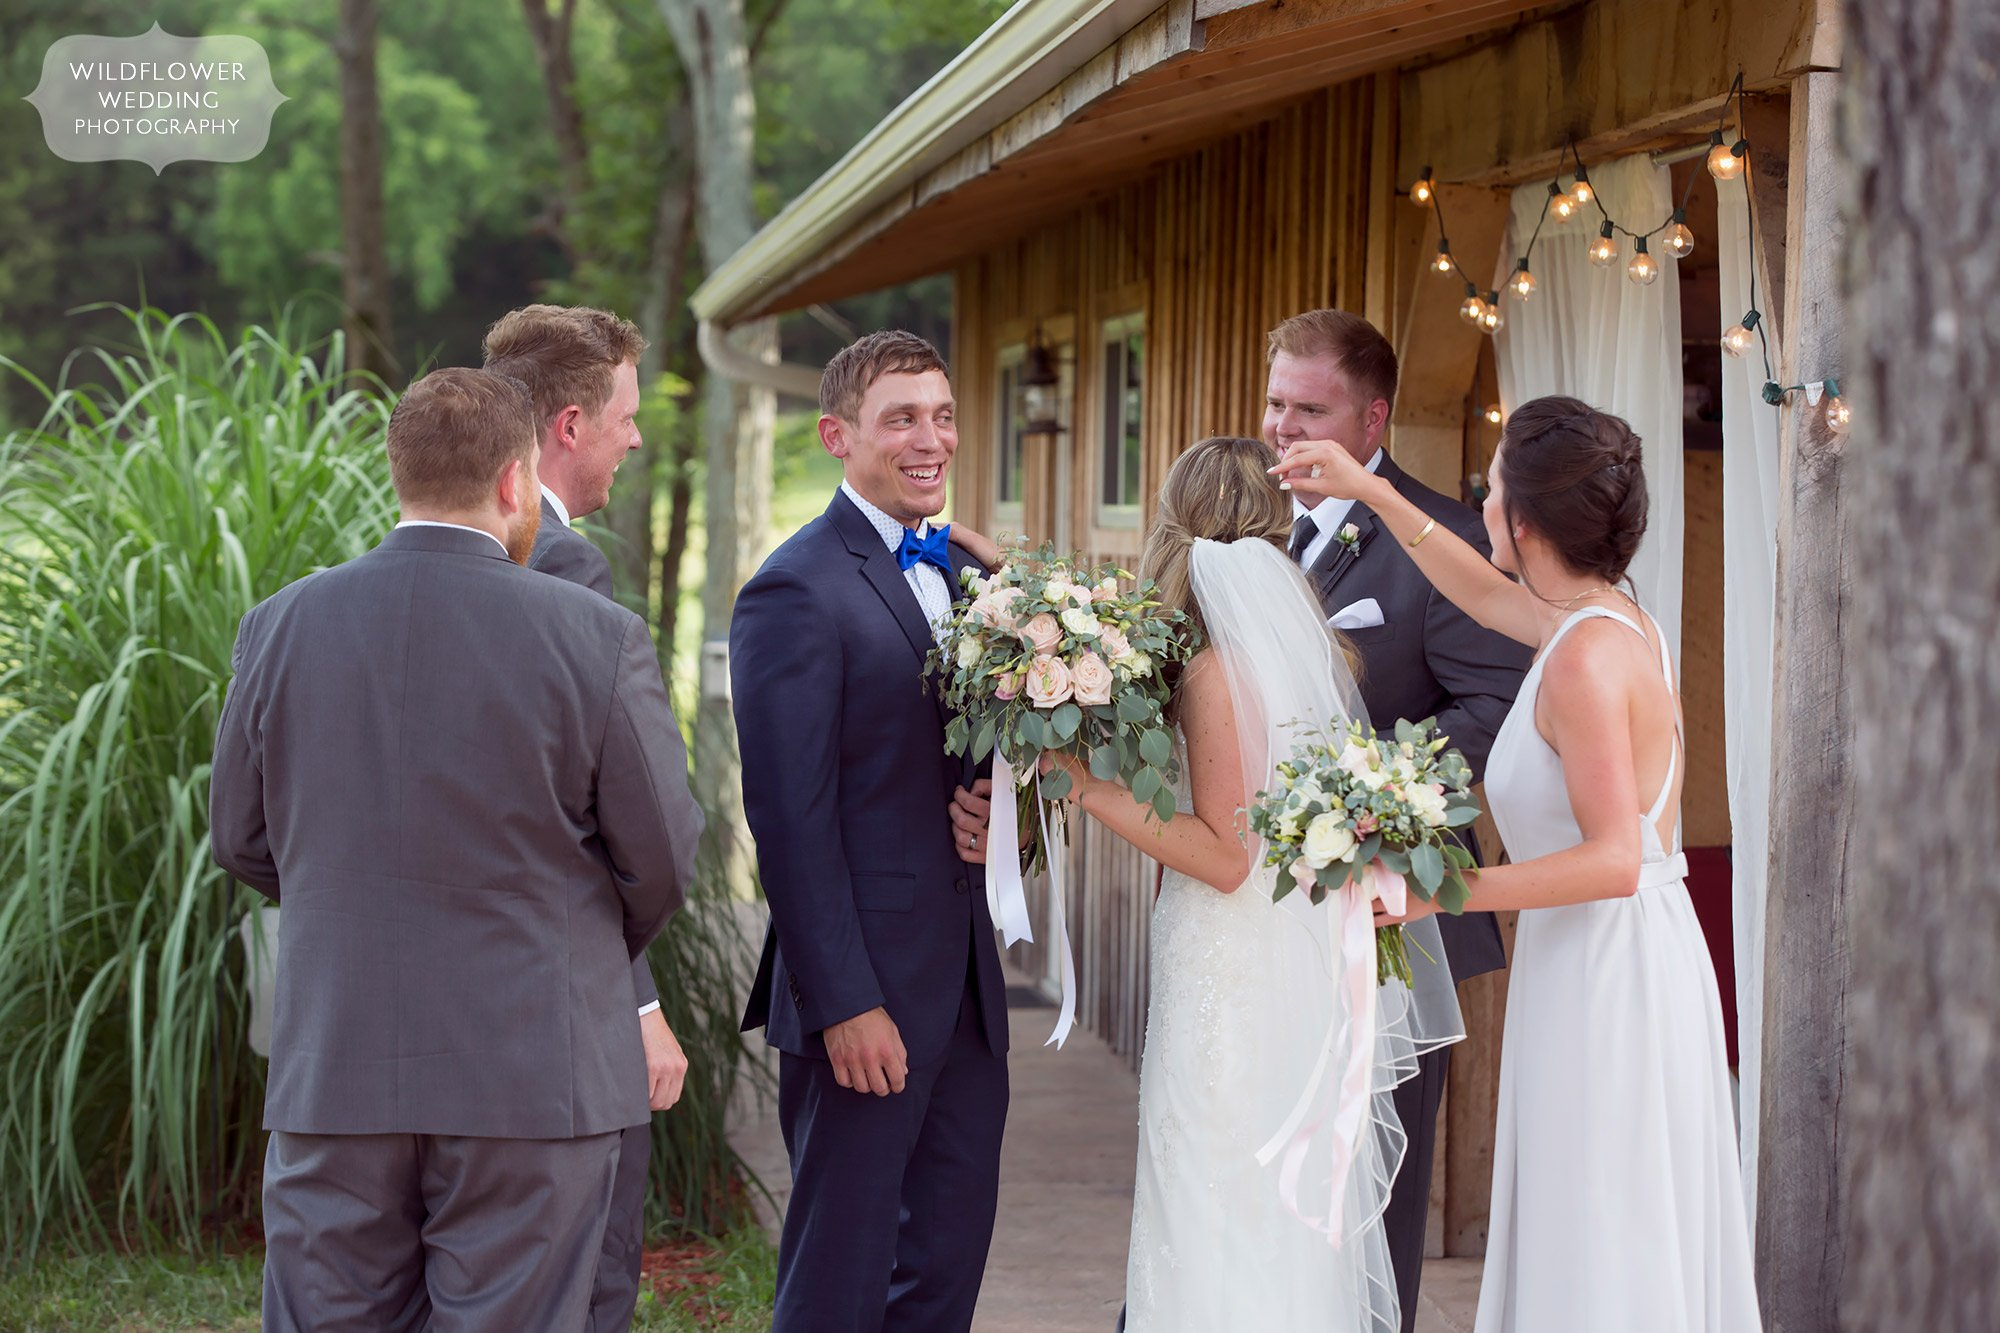 Such a happy photo of the bride and groom's friends congratulating them after the wedding ceremony at Kempker's.